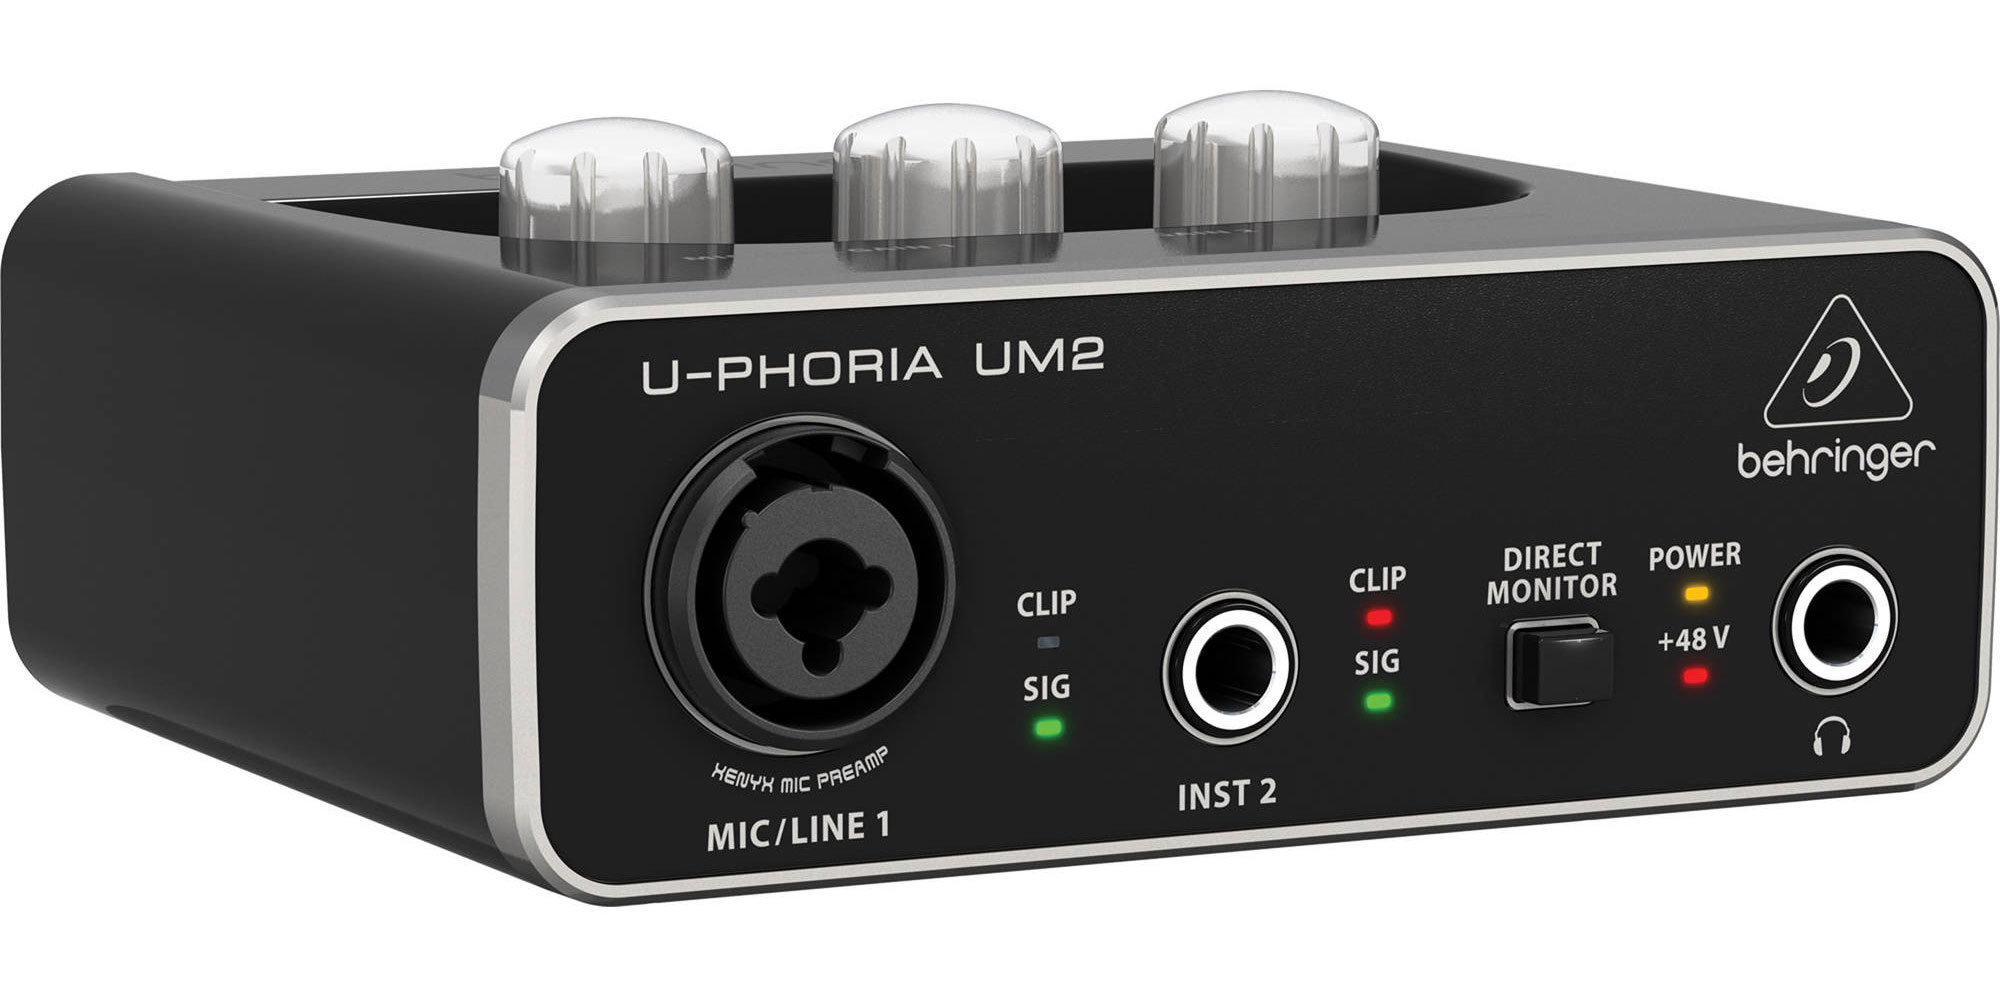 behringer 39 s u phoria guitar mic usb audio interface for mac at just 30 shipped 25 off 9to5toys. Black Bedroom Furniture Sets. Home Design Ideas